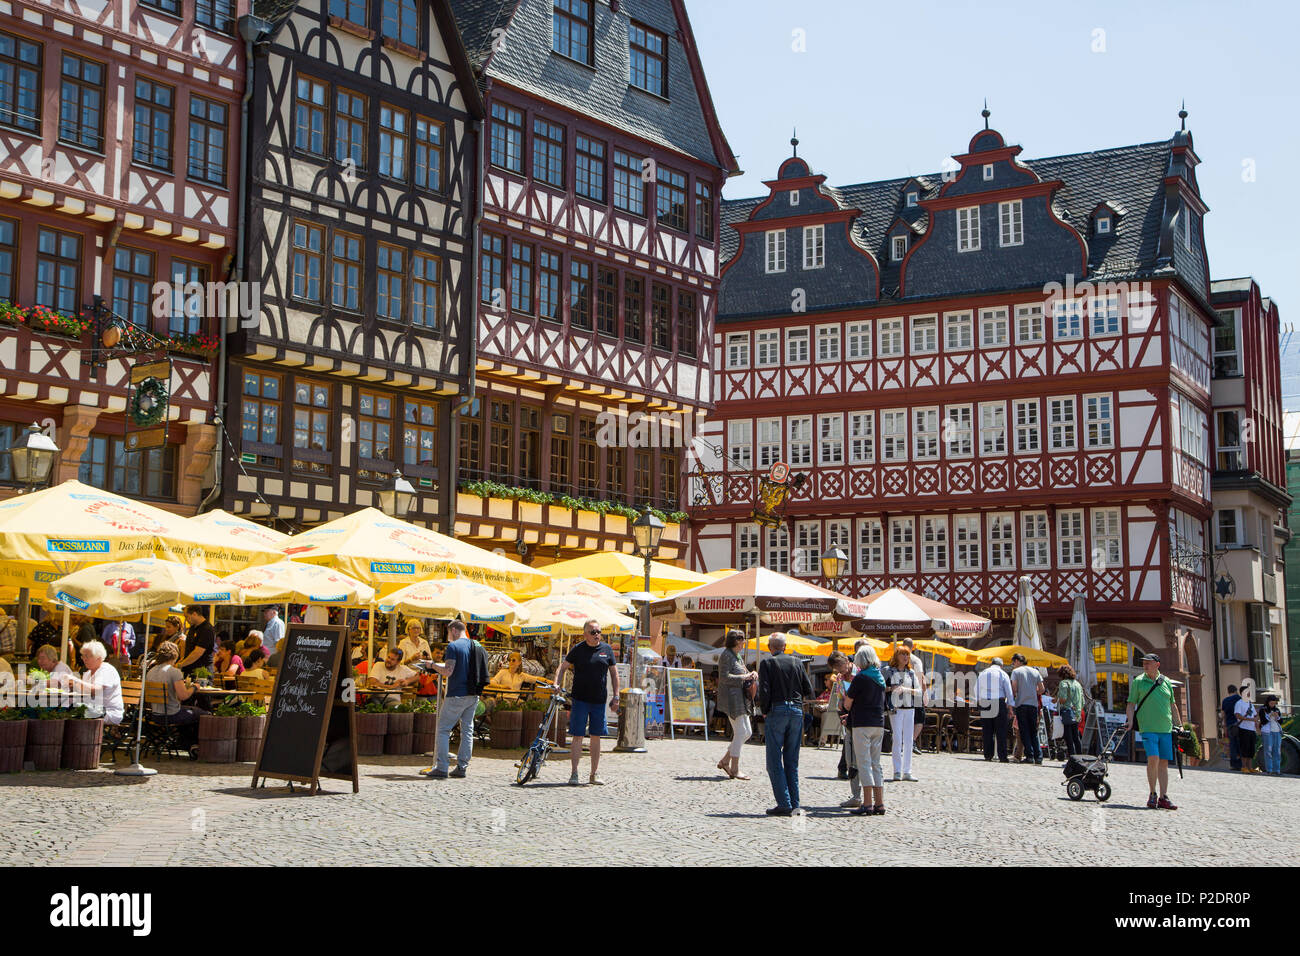 Half-timbered buildings with outdoor seating at restaurants on Roemerberg square, Frankfurt am Main, Hessen, Germany, Europe - Stock Image